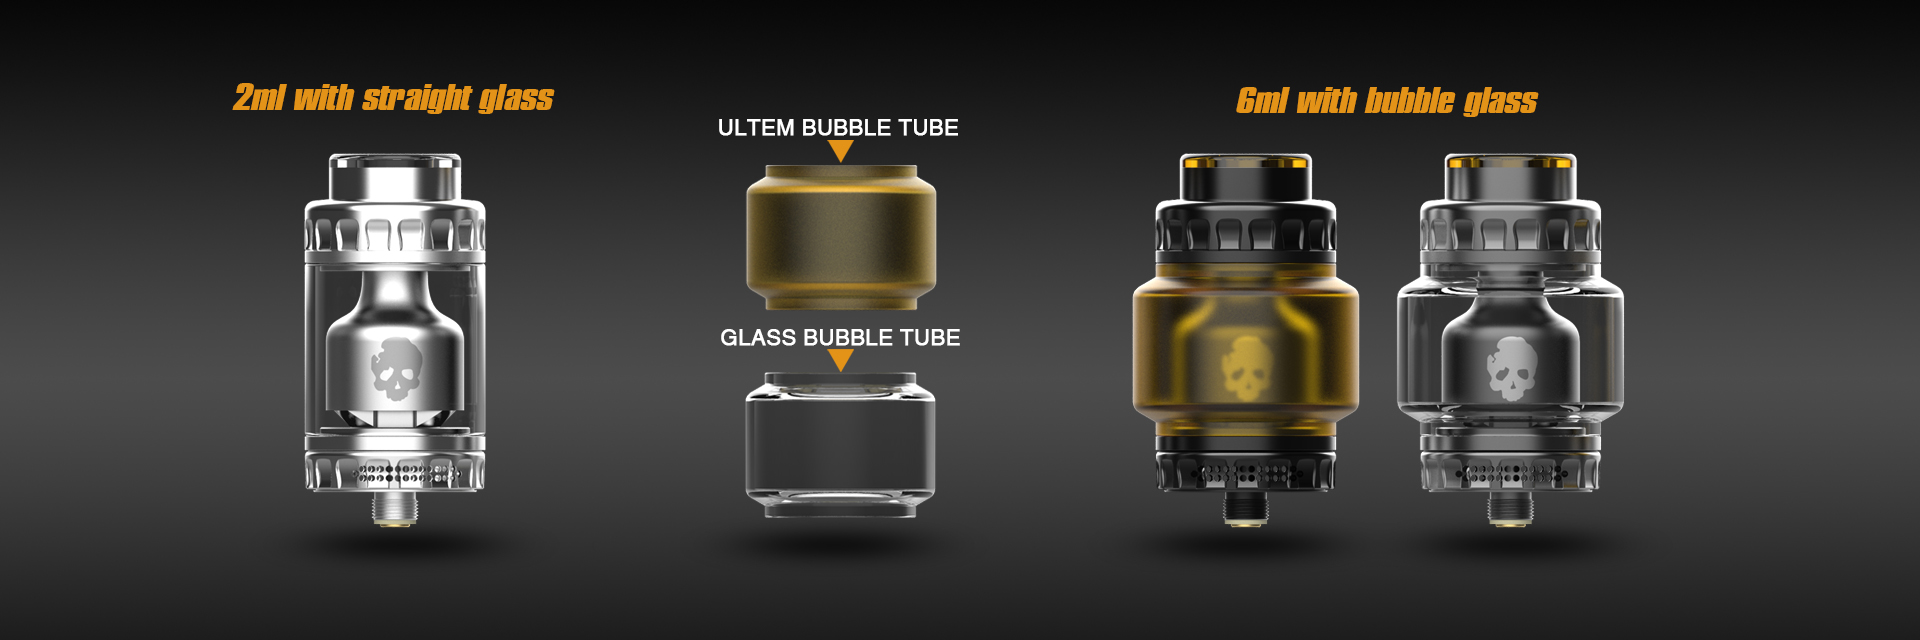 Blotto RTA with Bubble Glass